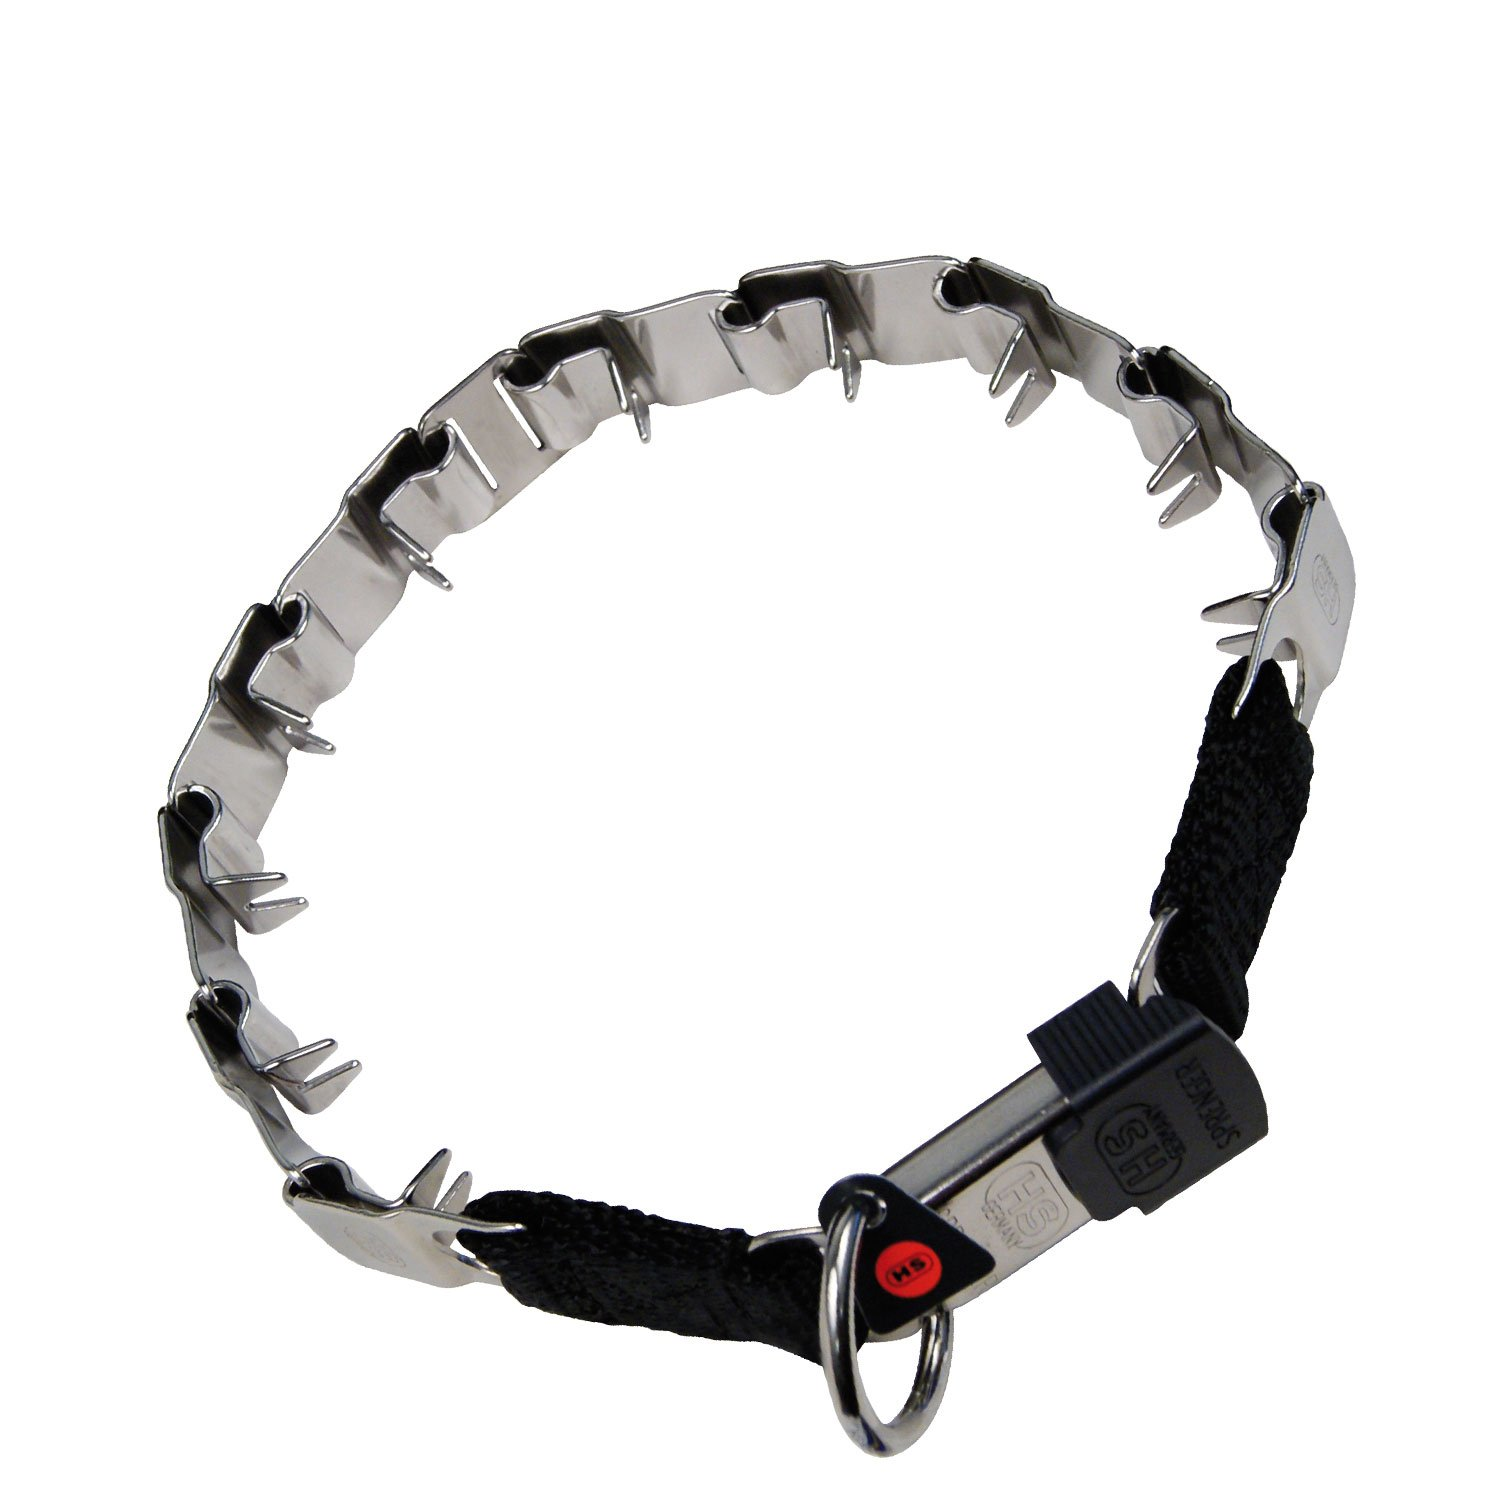 Herm Sprenger Original NEW Metal Collar ''Neck Tech'', Size: 24'', Stainless Steel, Life Time Warranty. by HS METAL COLLARS